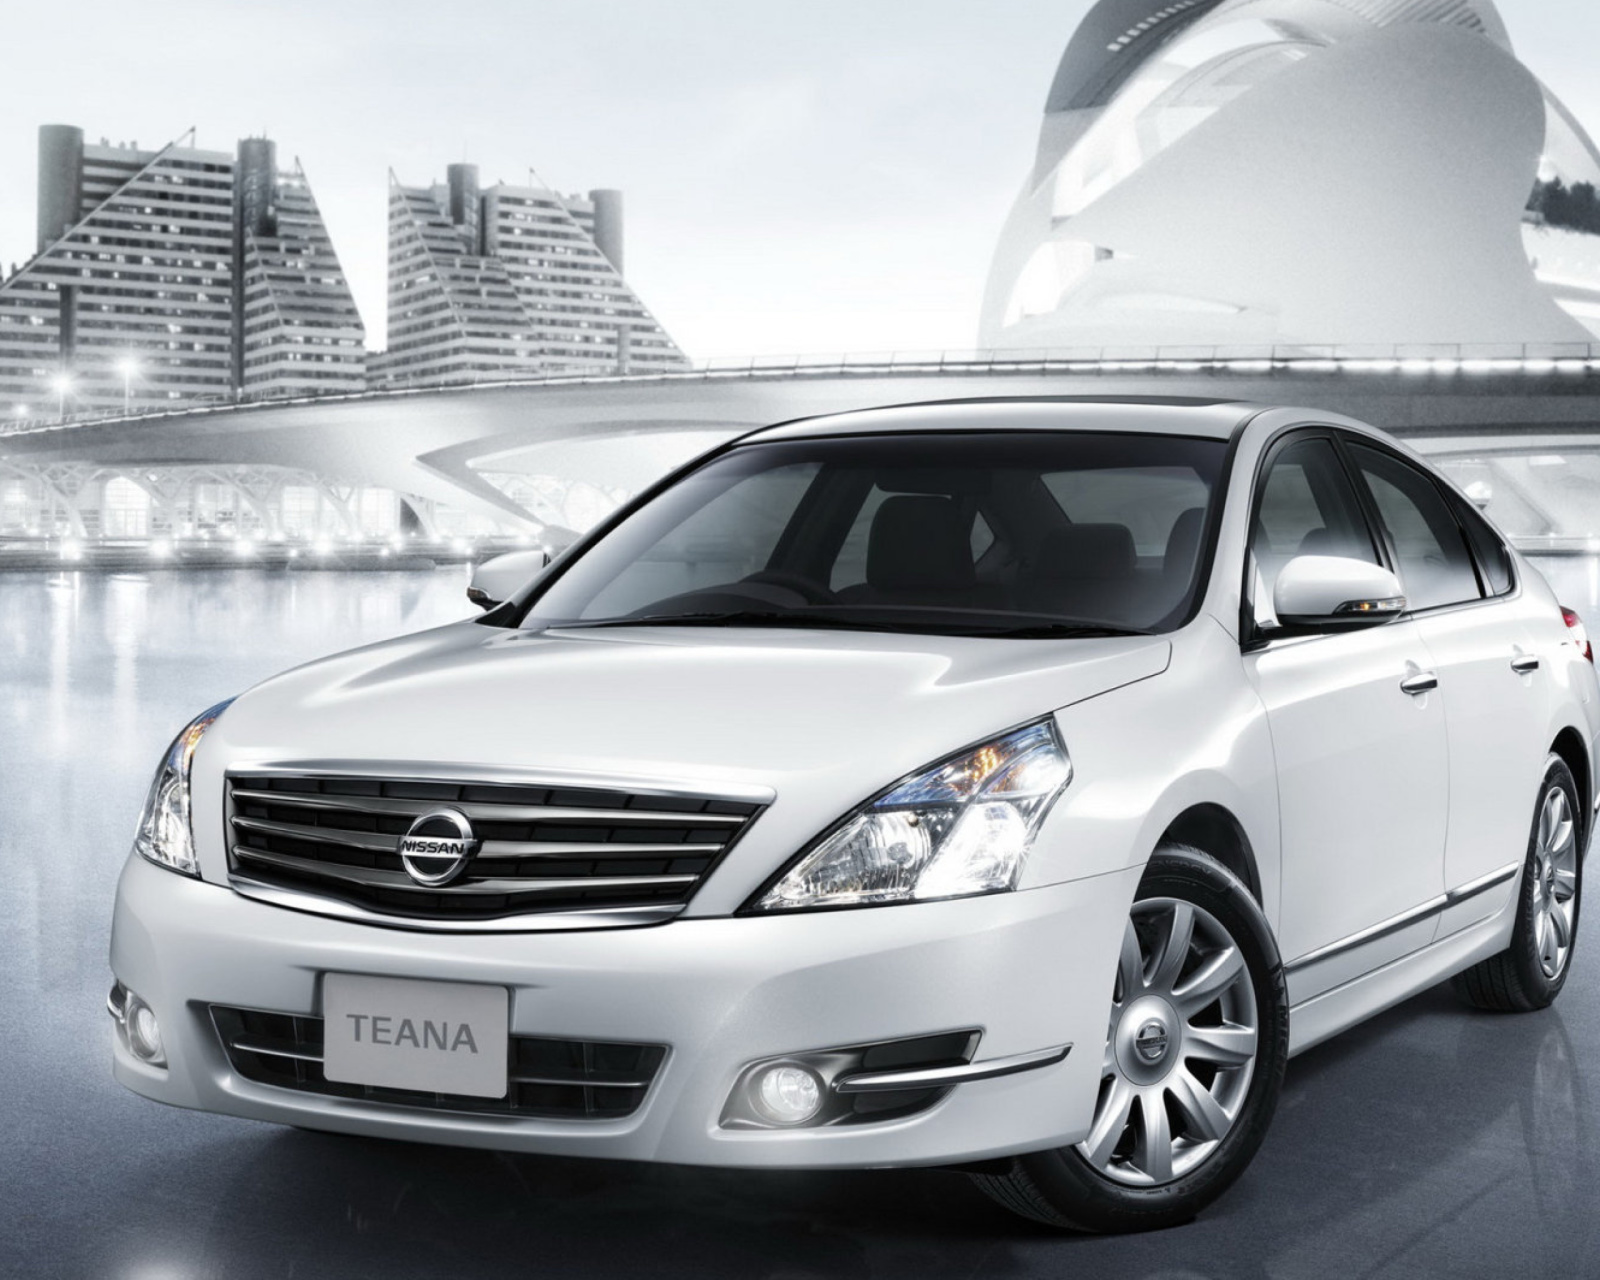 Das Nissan Teana Sedan Wallpaper 1600x1280